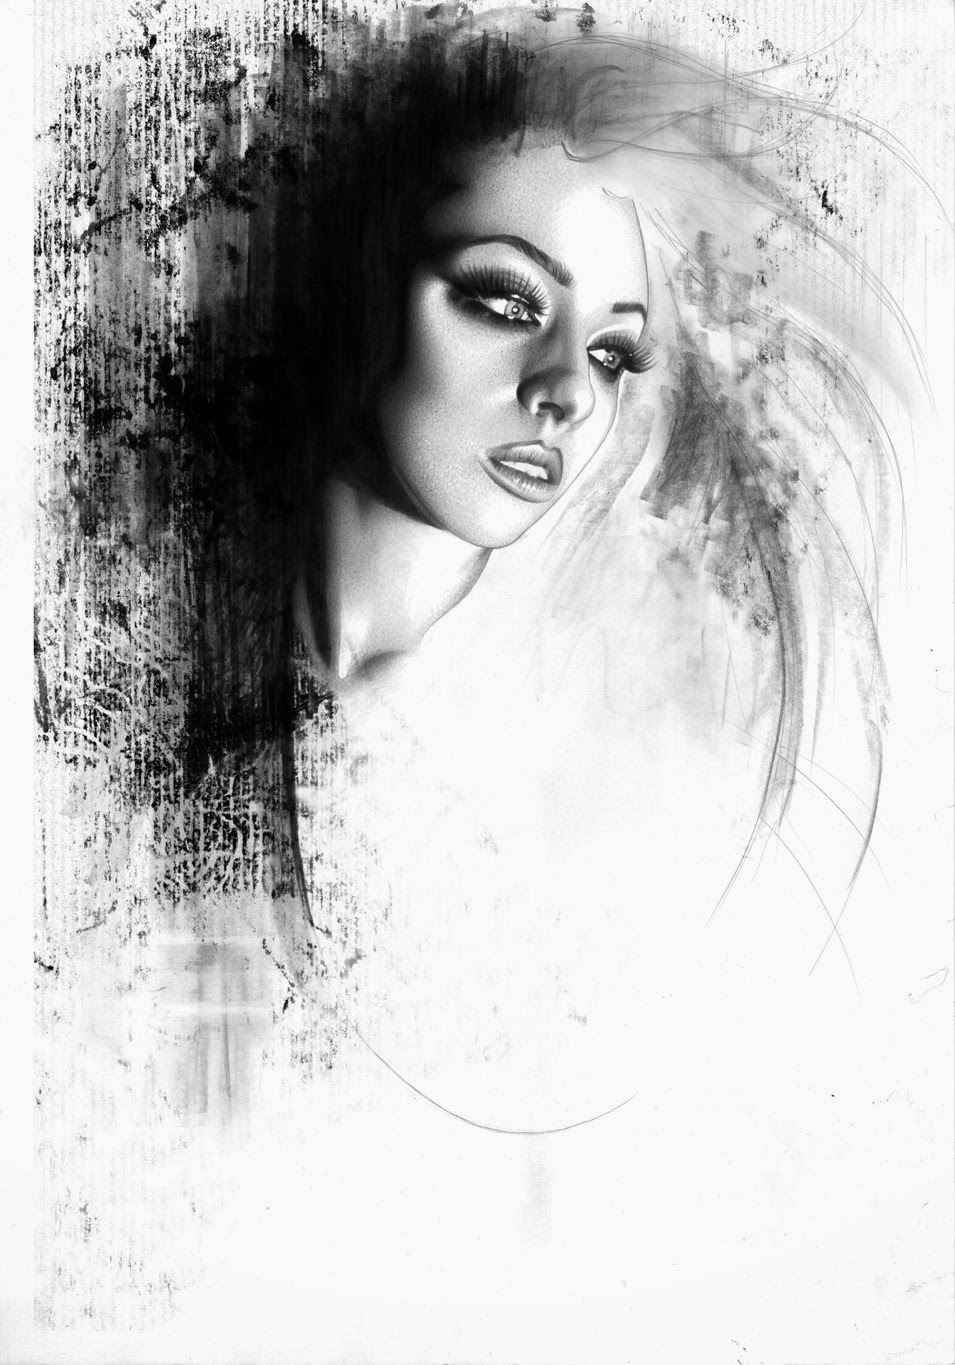 06-Bex-Cassie-Light-Versus-Dark-Drawings-www-designstack-co